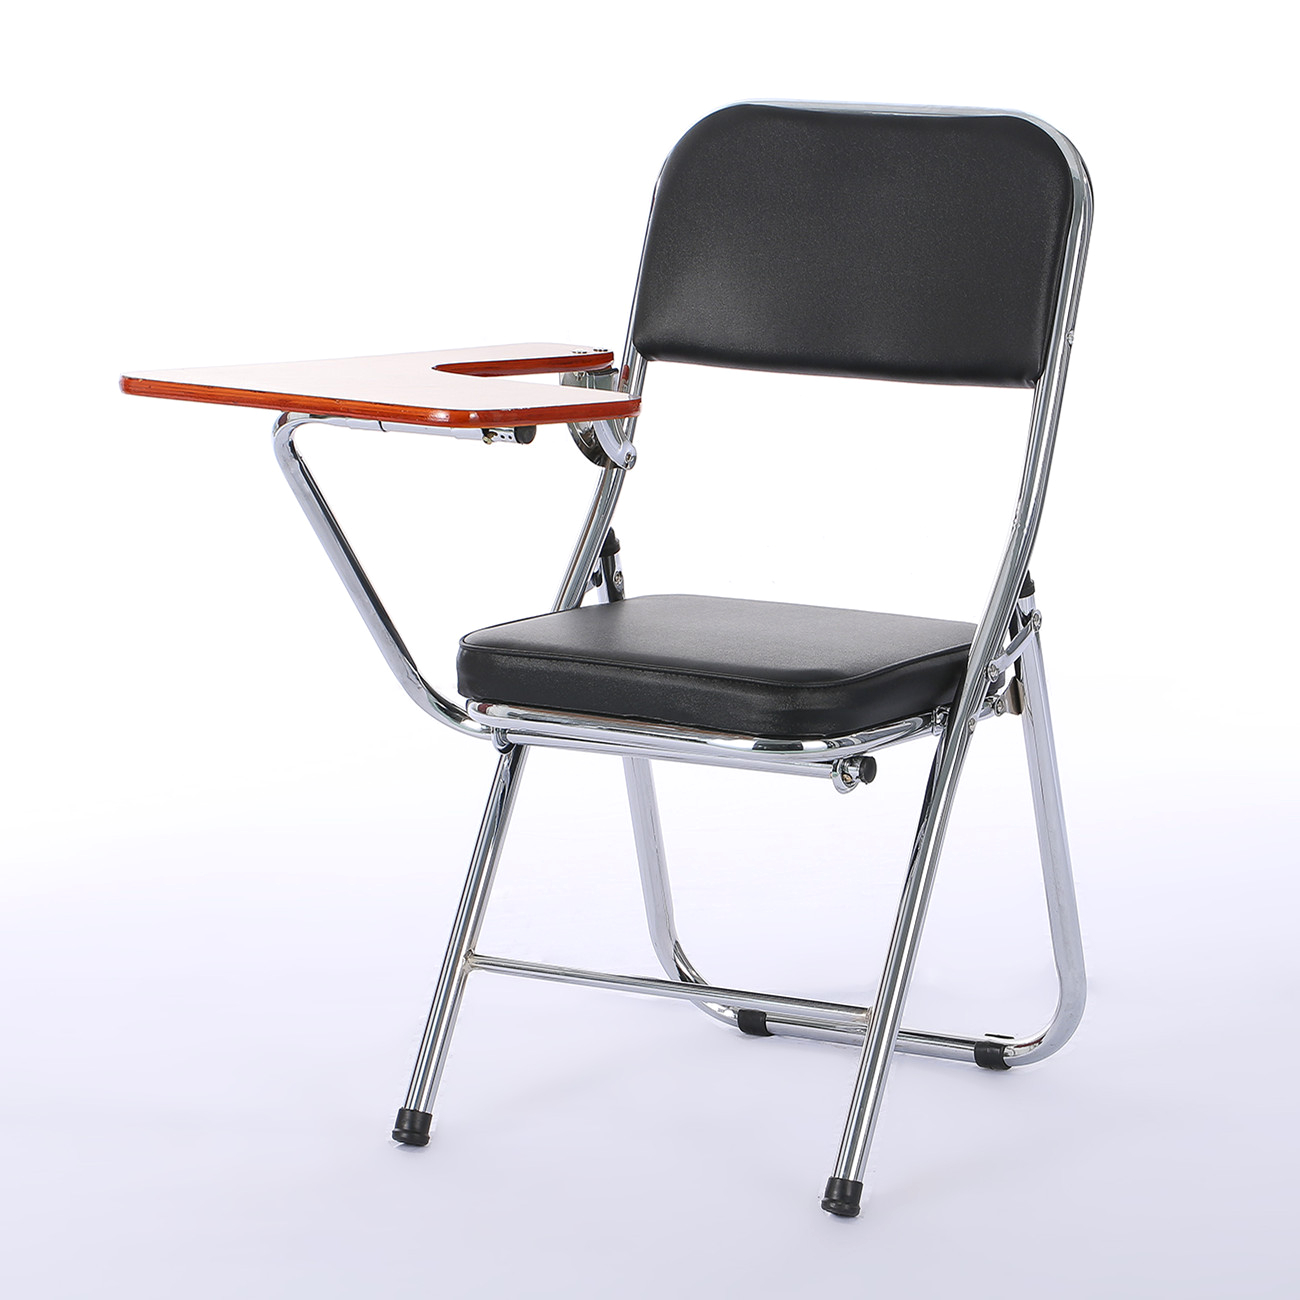 Modern Fashion Staff Training Chair With Writing Board Folding Office Chair Portable Comfortable Student Learning Computer Chair